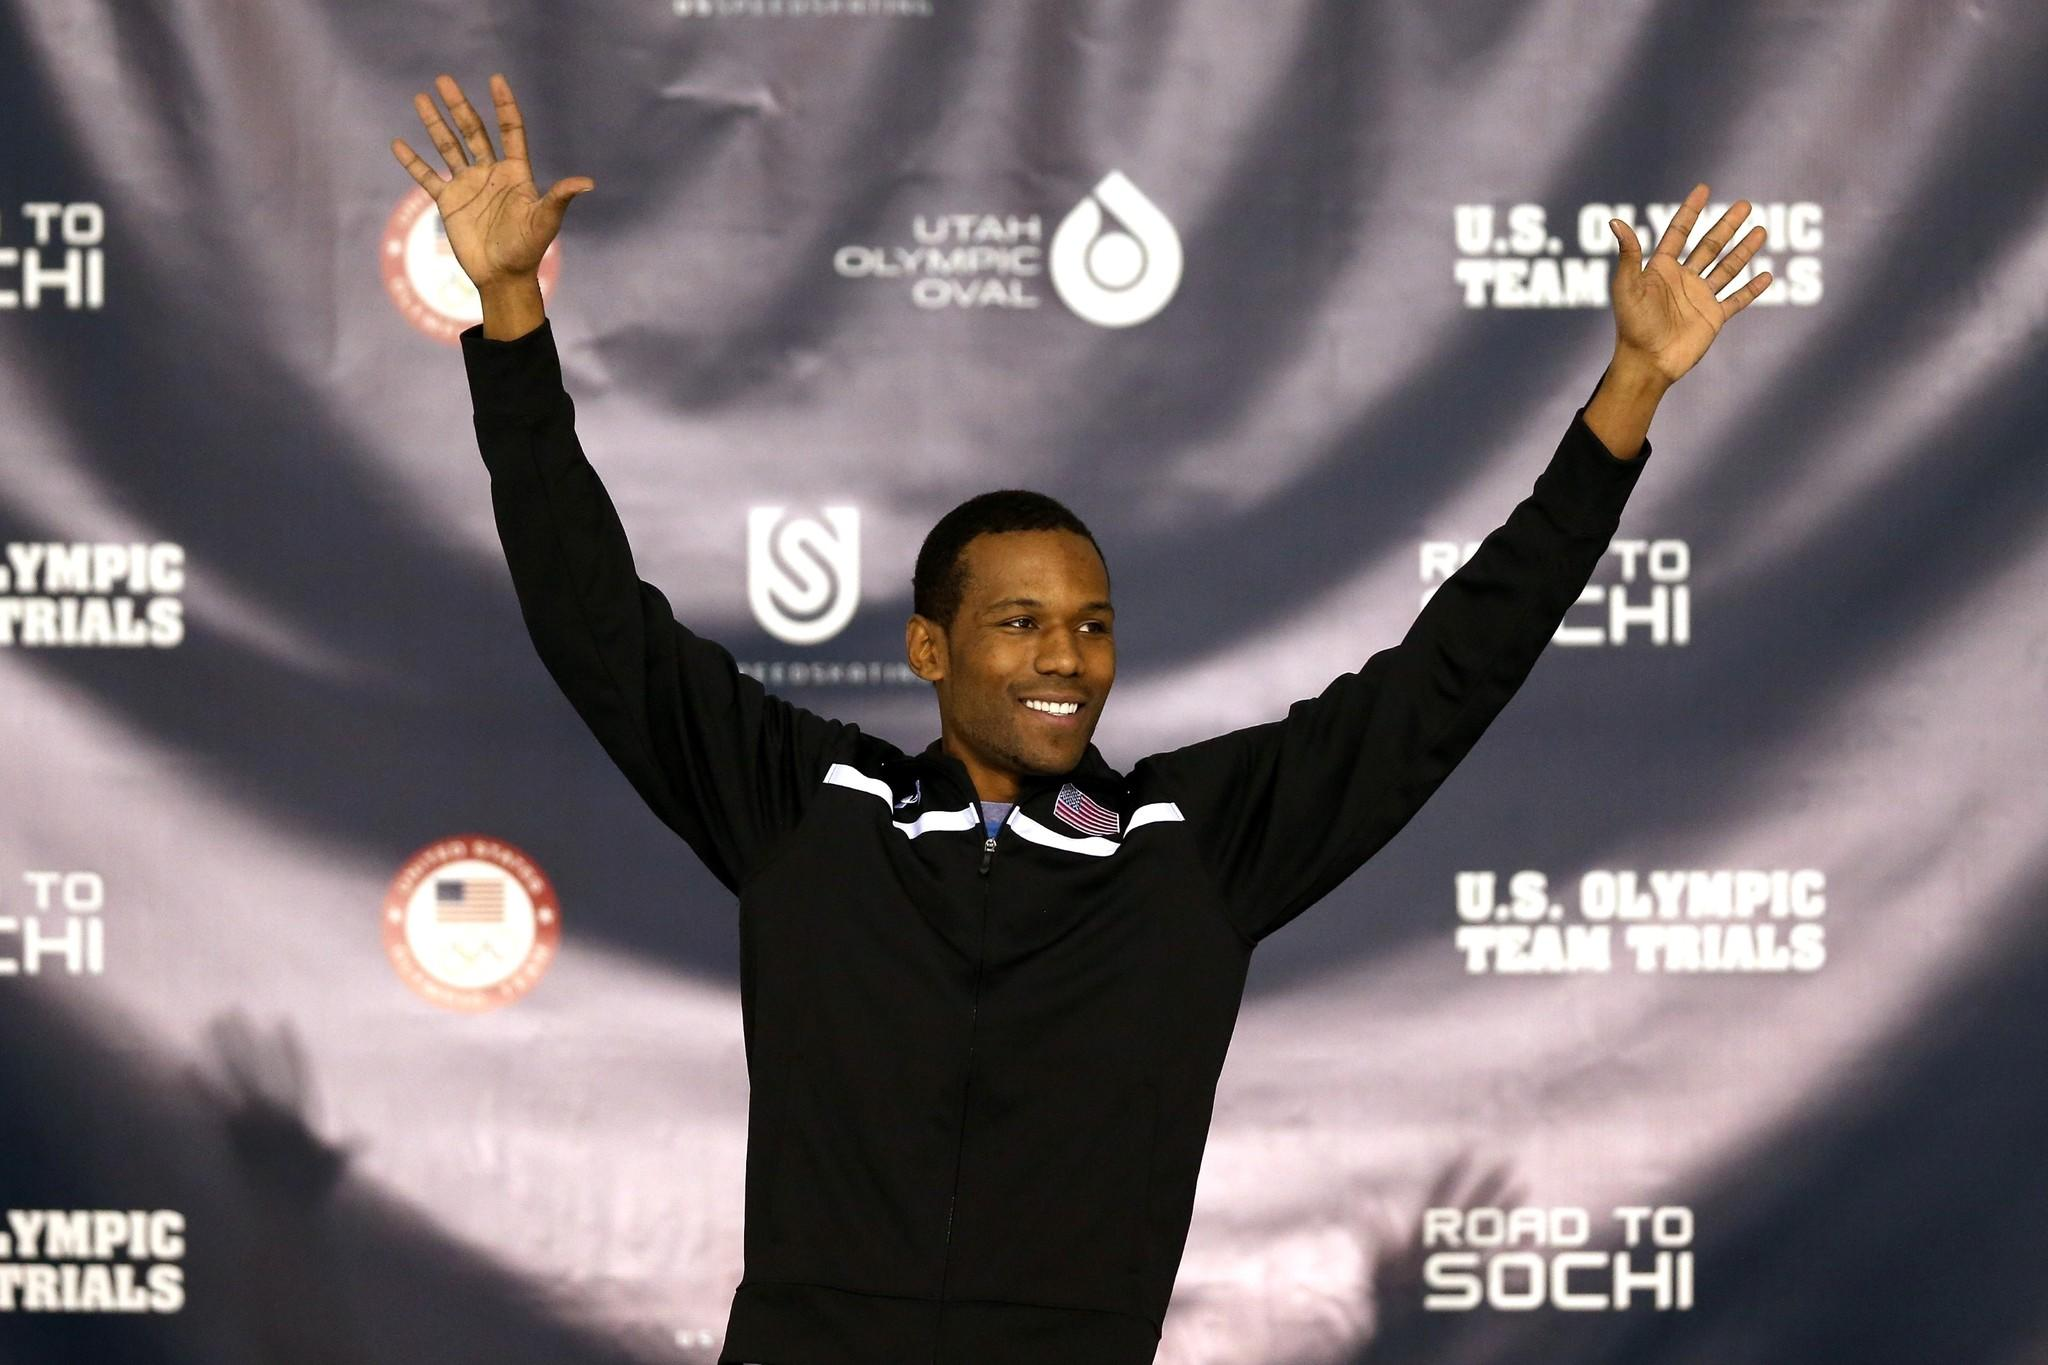 Shani Davis celebrates on the medals podium after winning the men's 1,000 meter during the U.S. Speed Skating Long Track Olympic Trials at the Utah Olympic Oval.